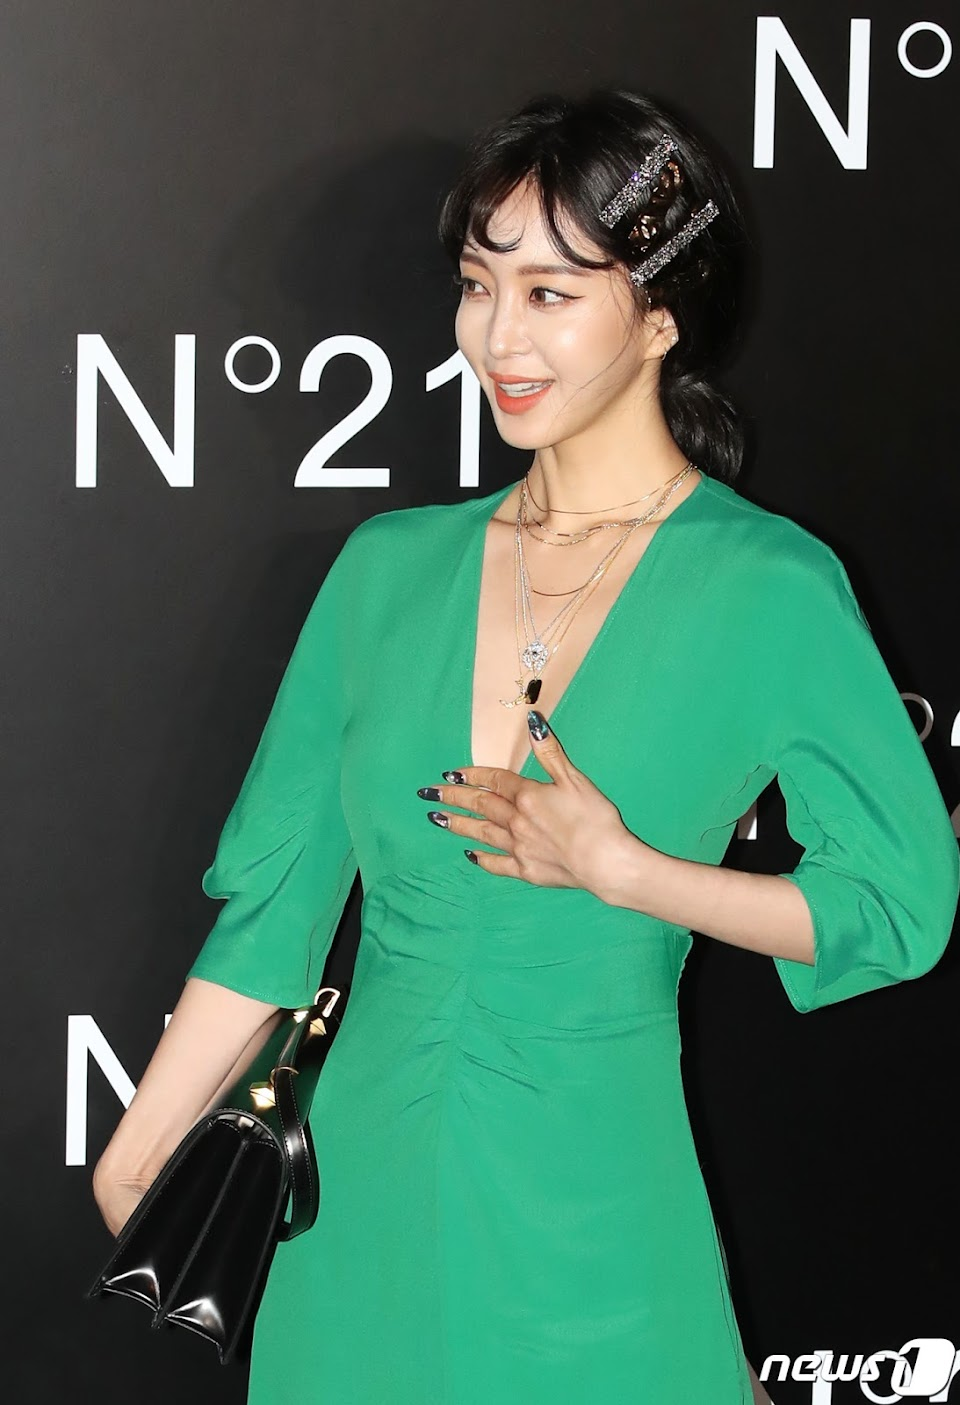 han ye seul green dress 8